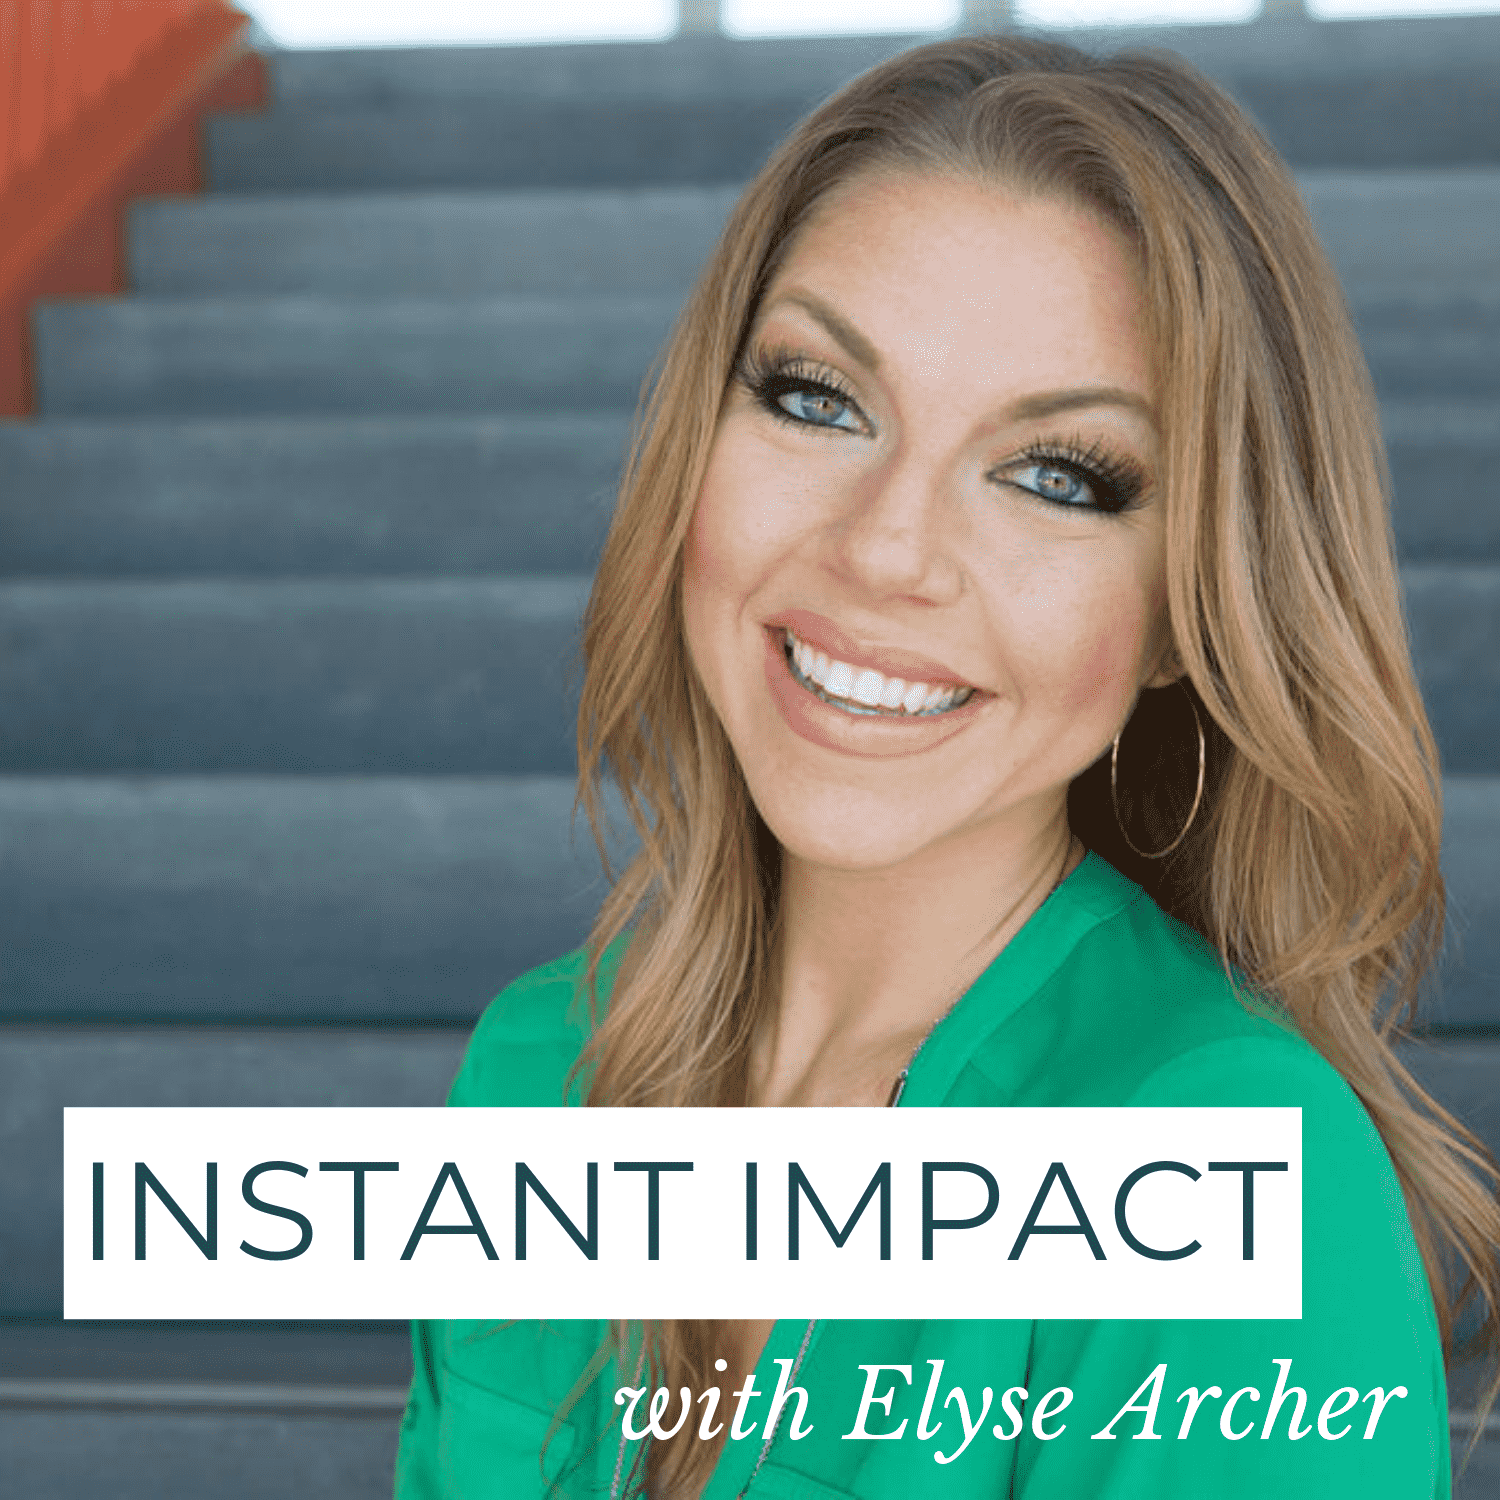 Instant Impact with Elyse Archer show art